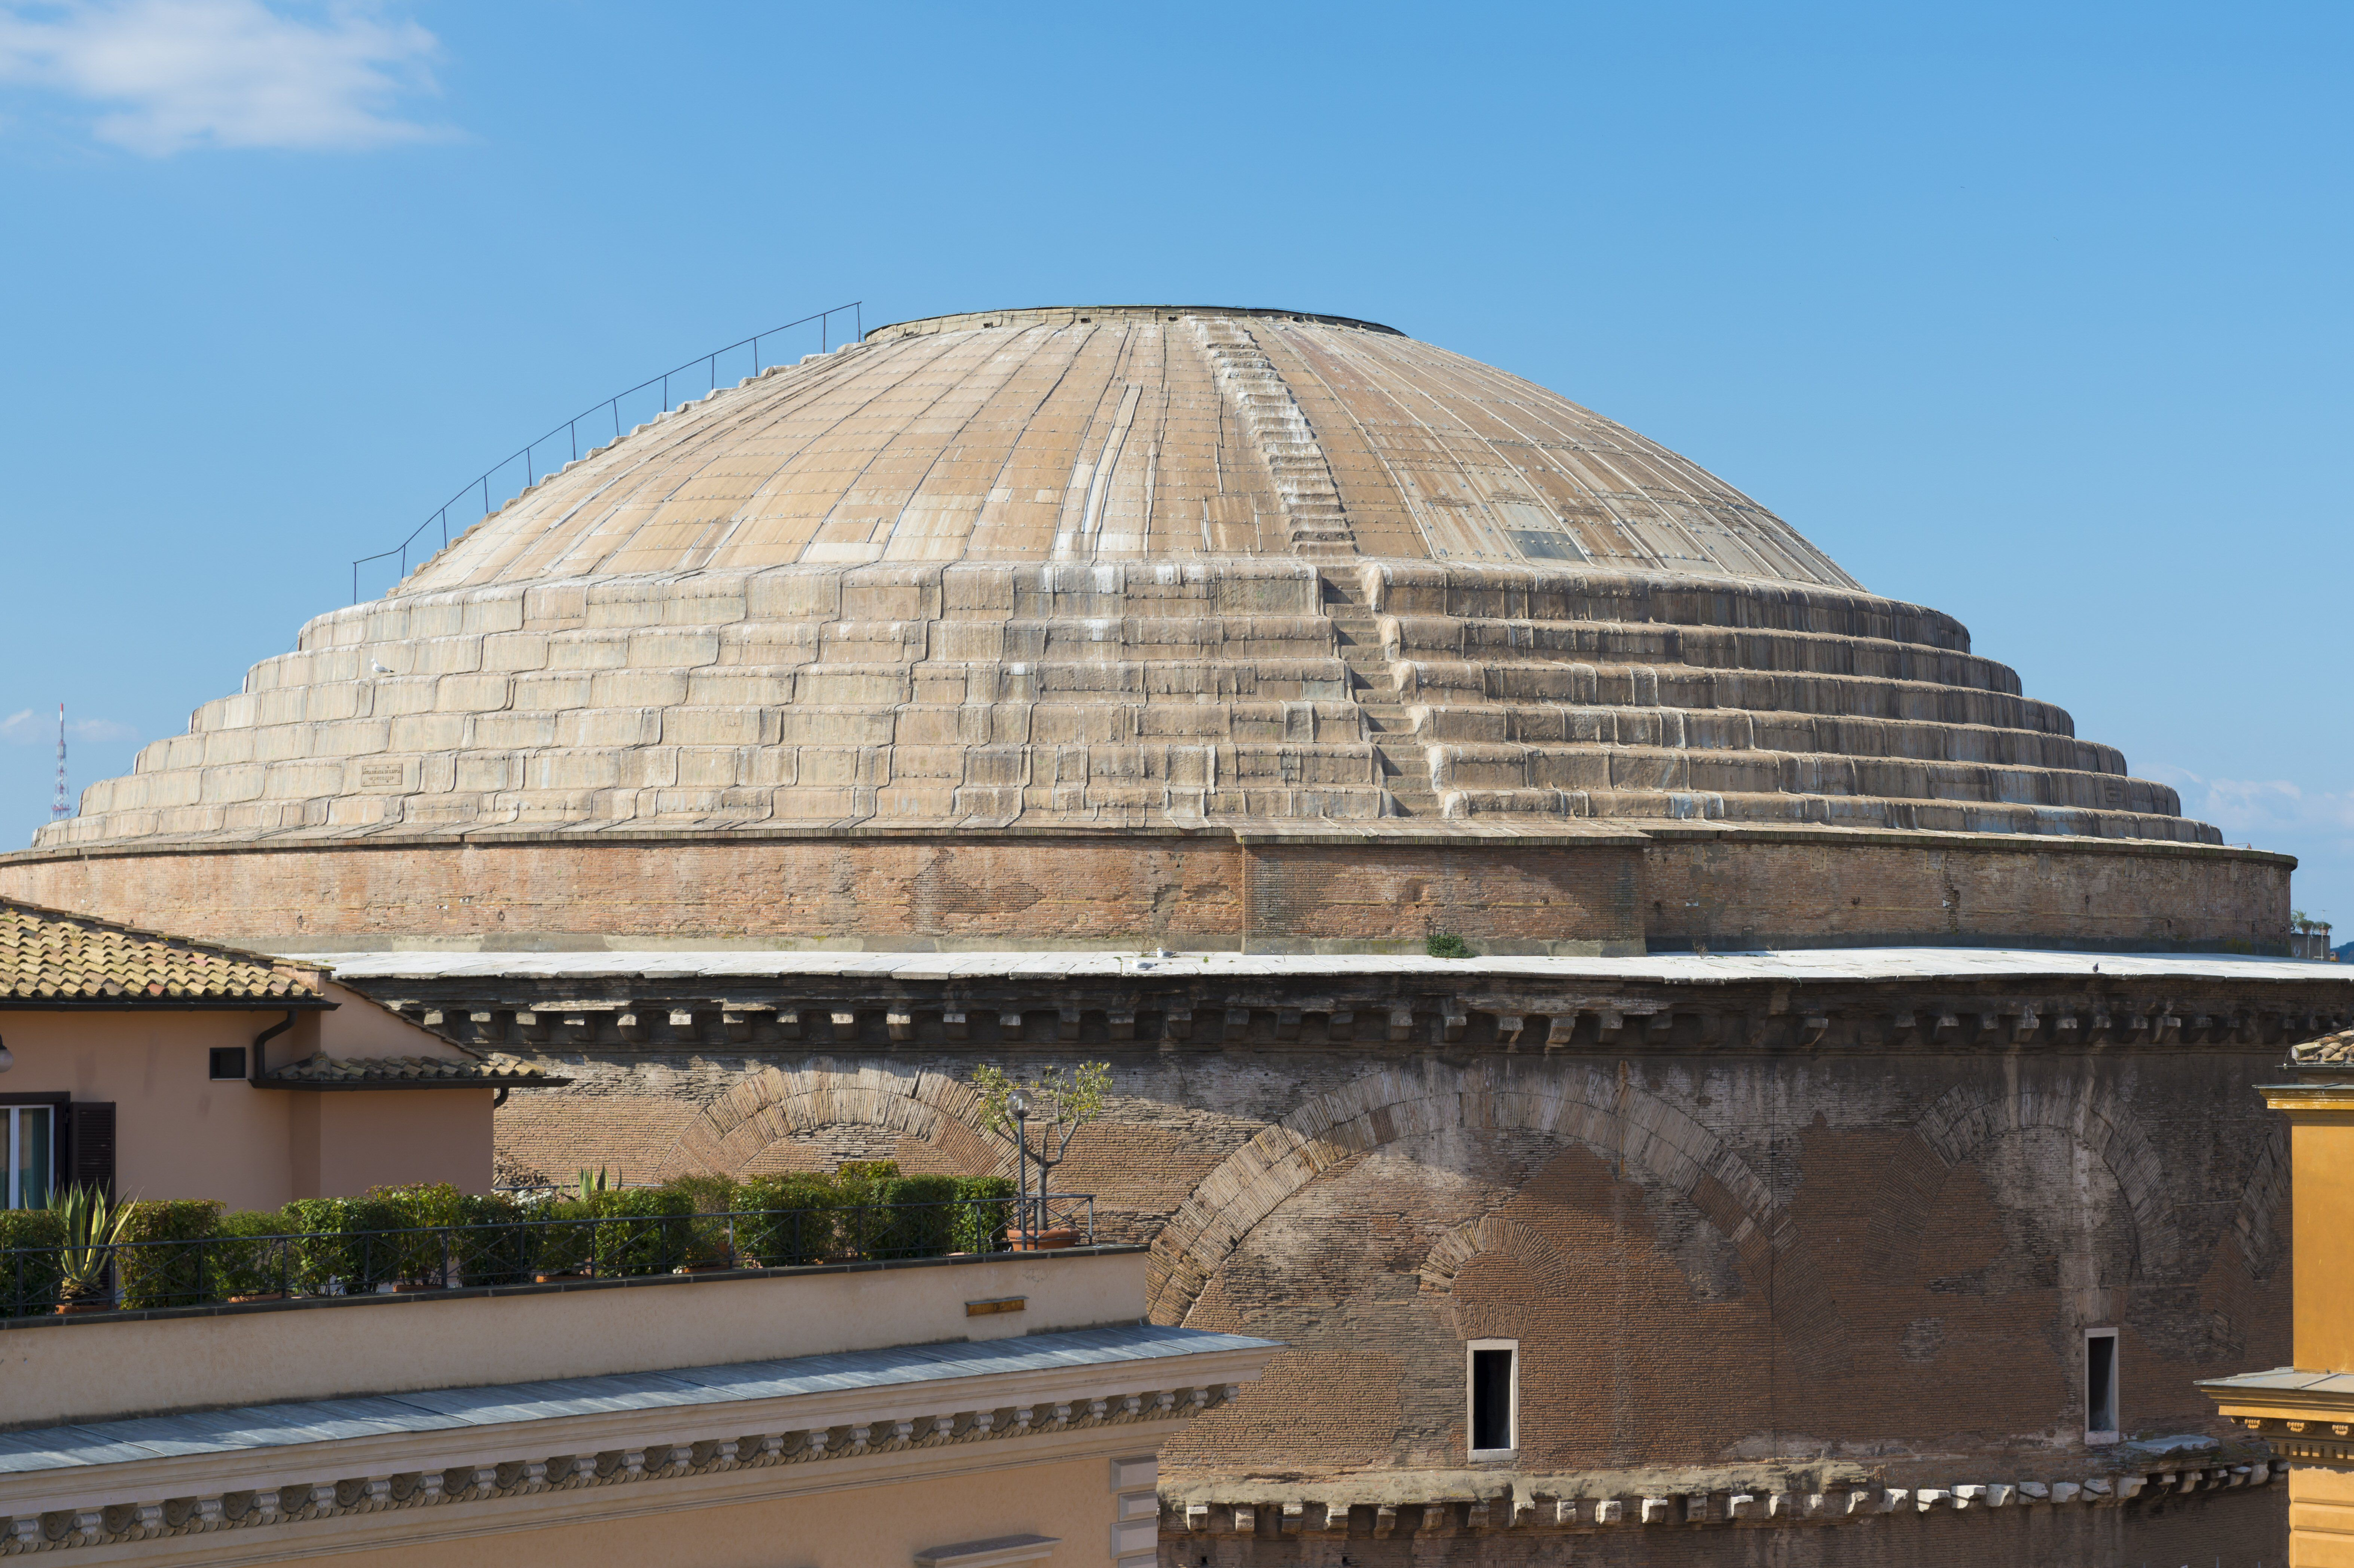 massive concrete dome with steps on the dome